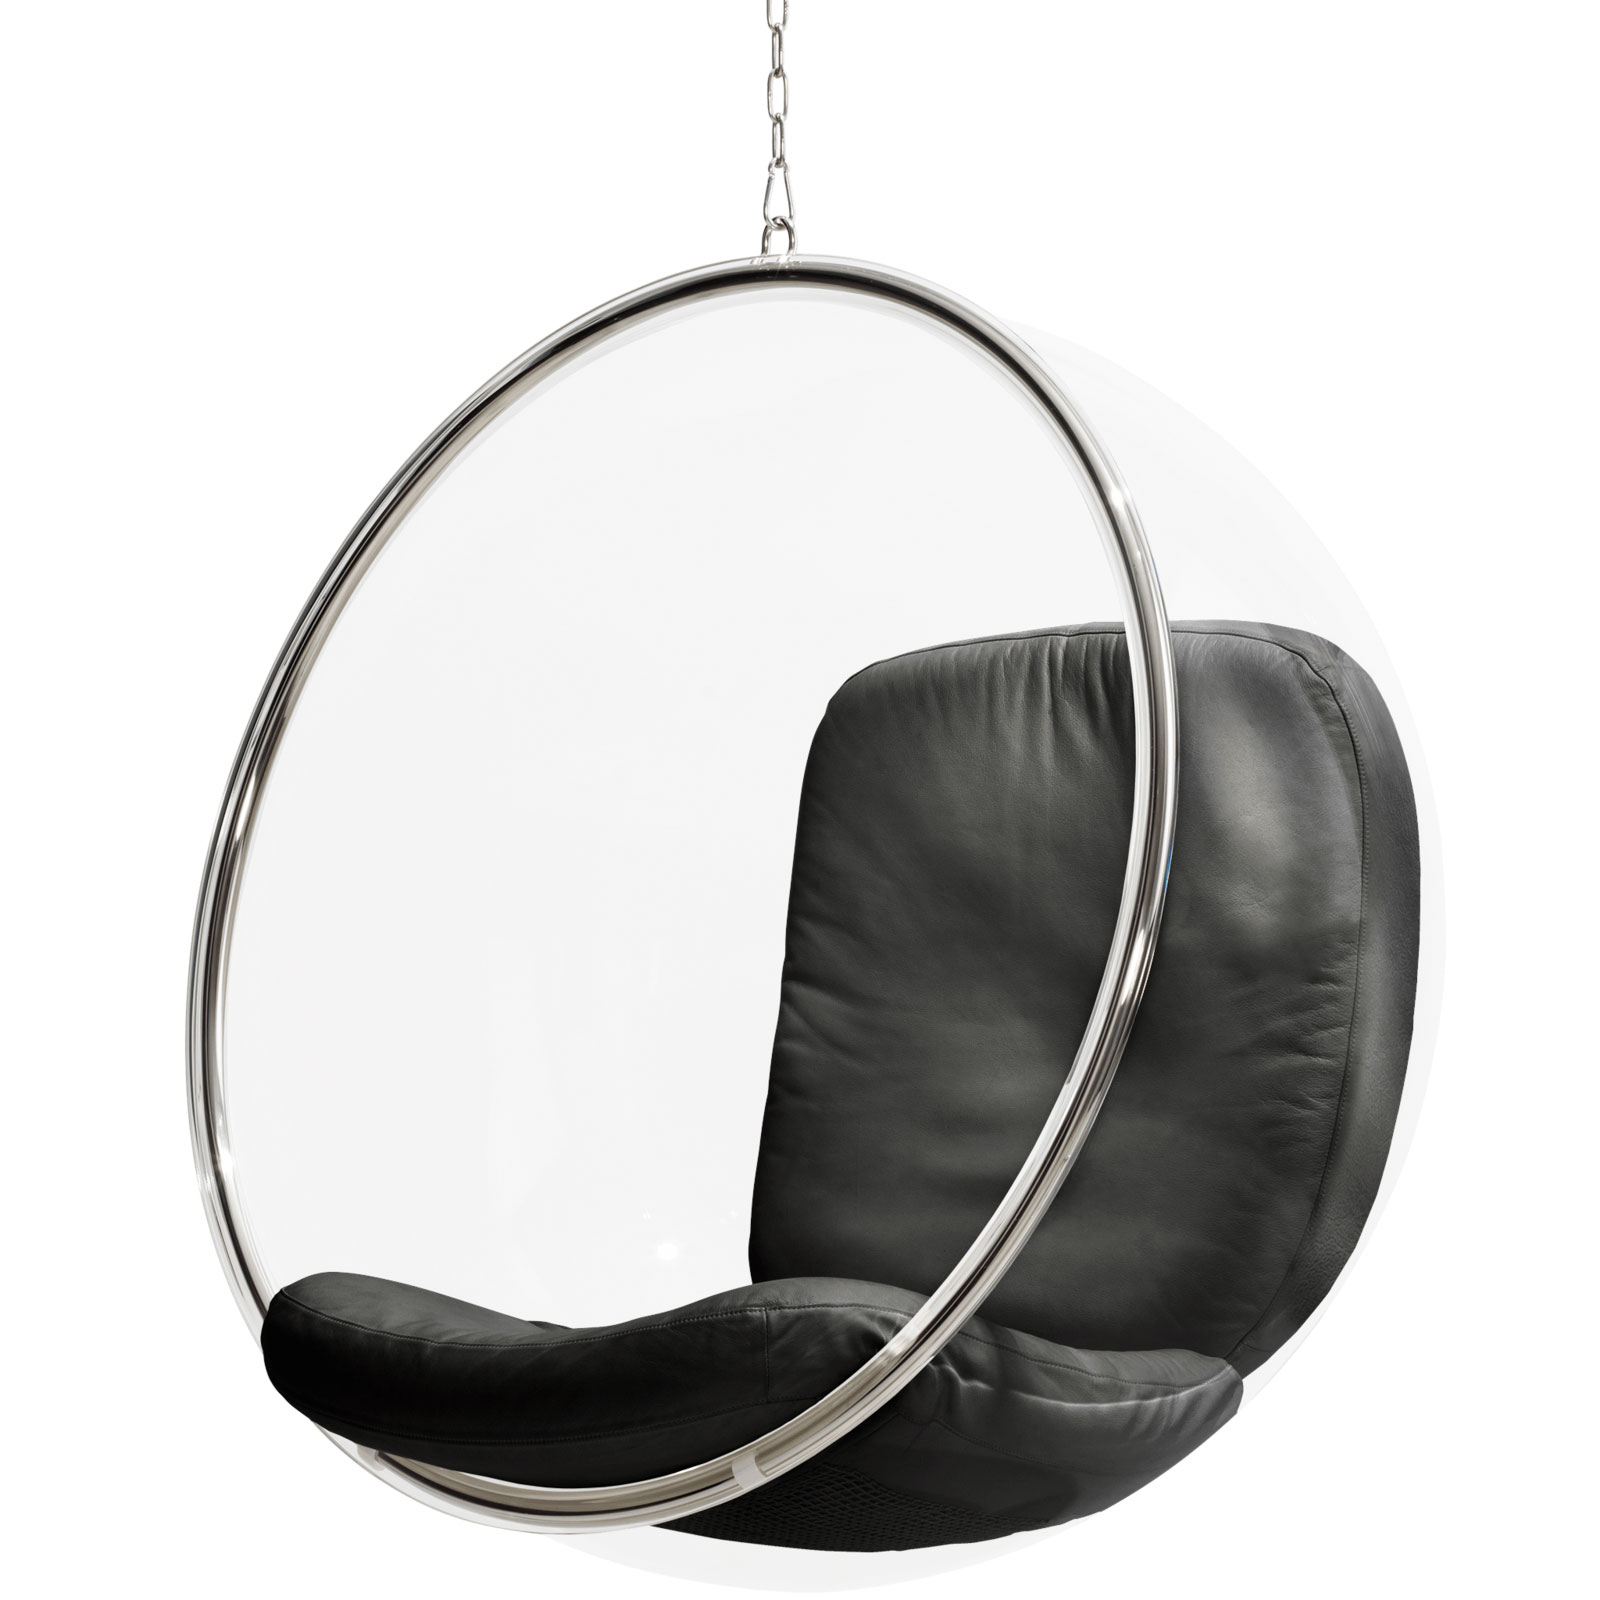 adelta bubble chair design eero aarnio 1968. Black Bedroom Furniture Sets. Home Design Ideas